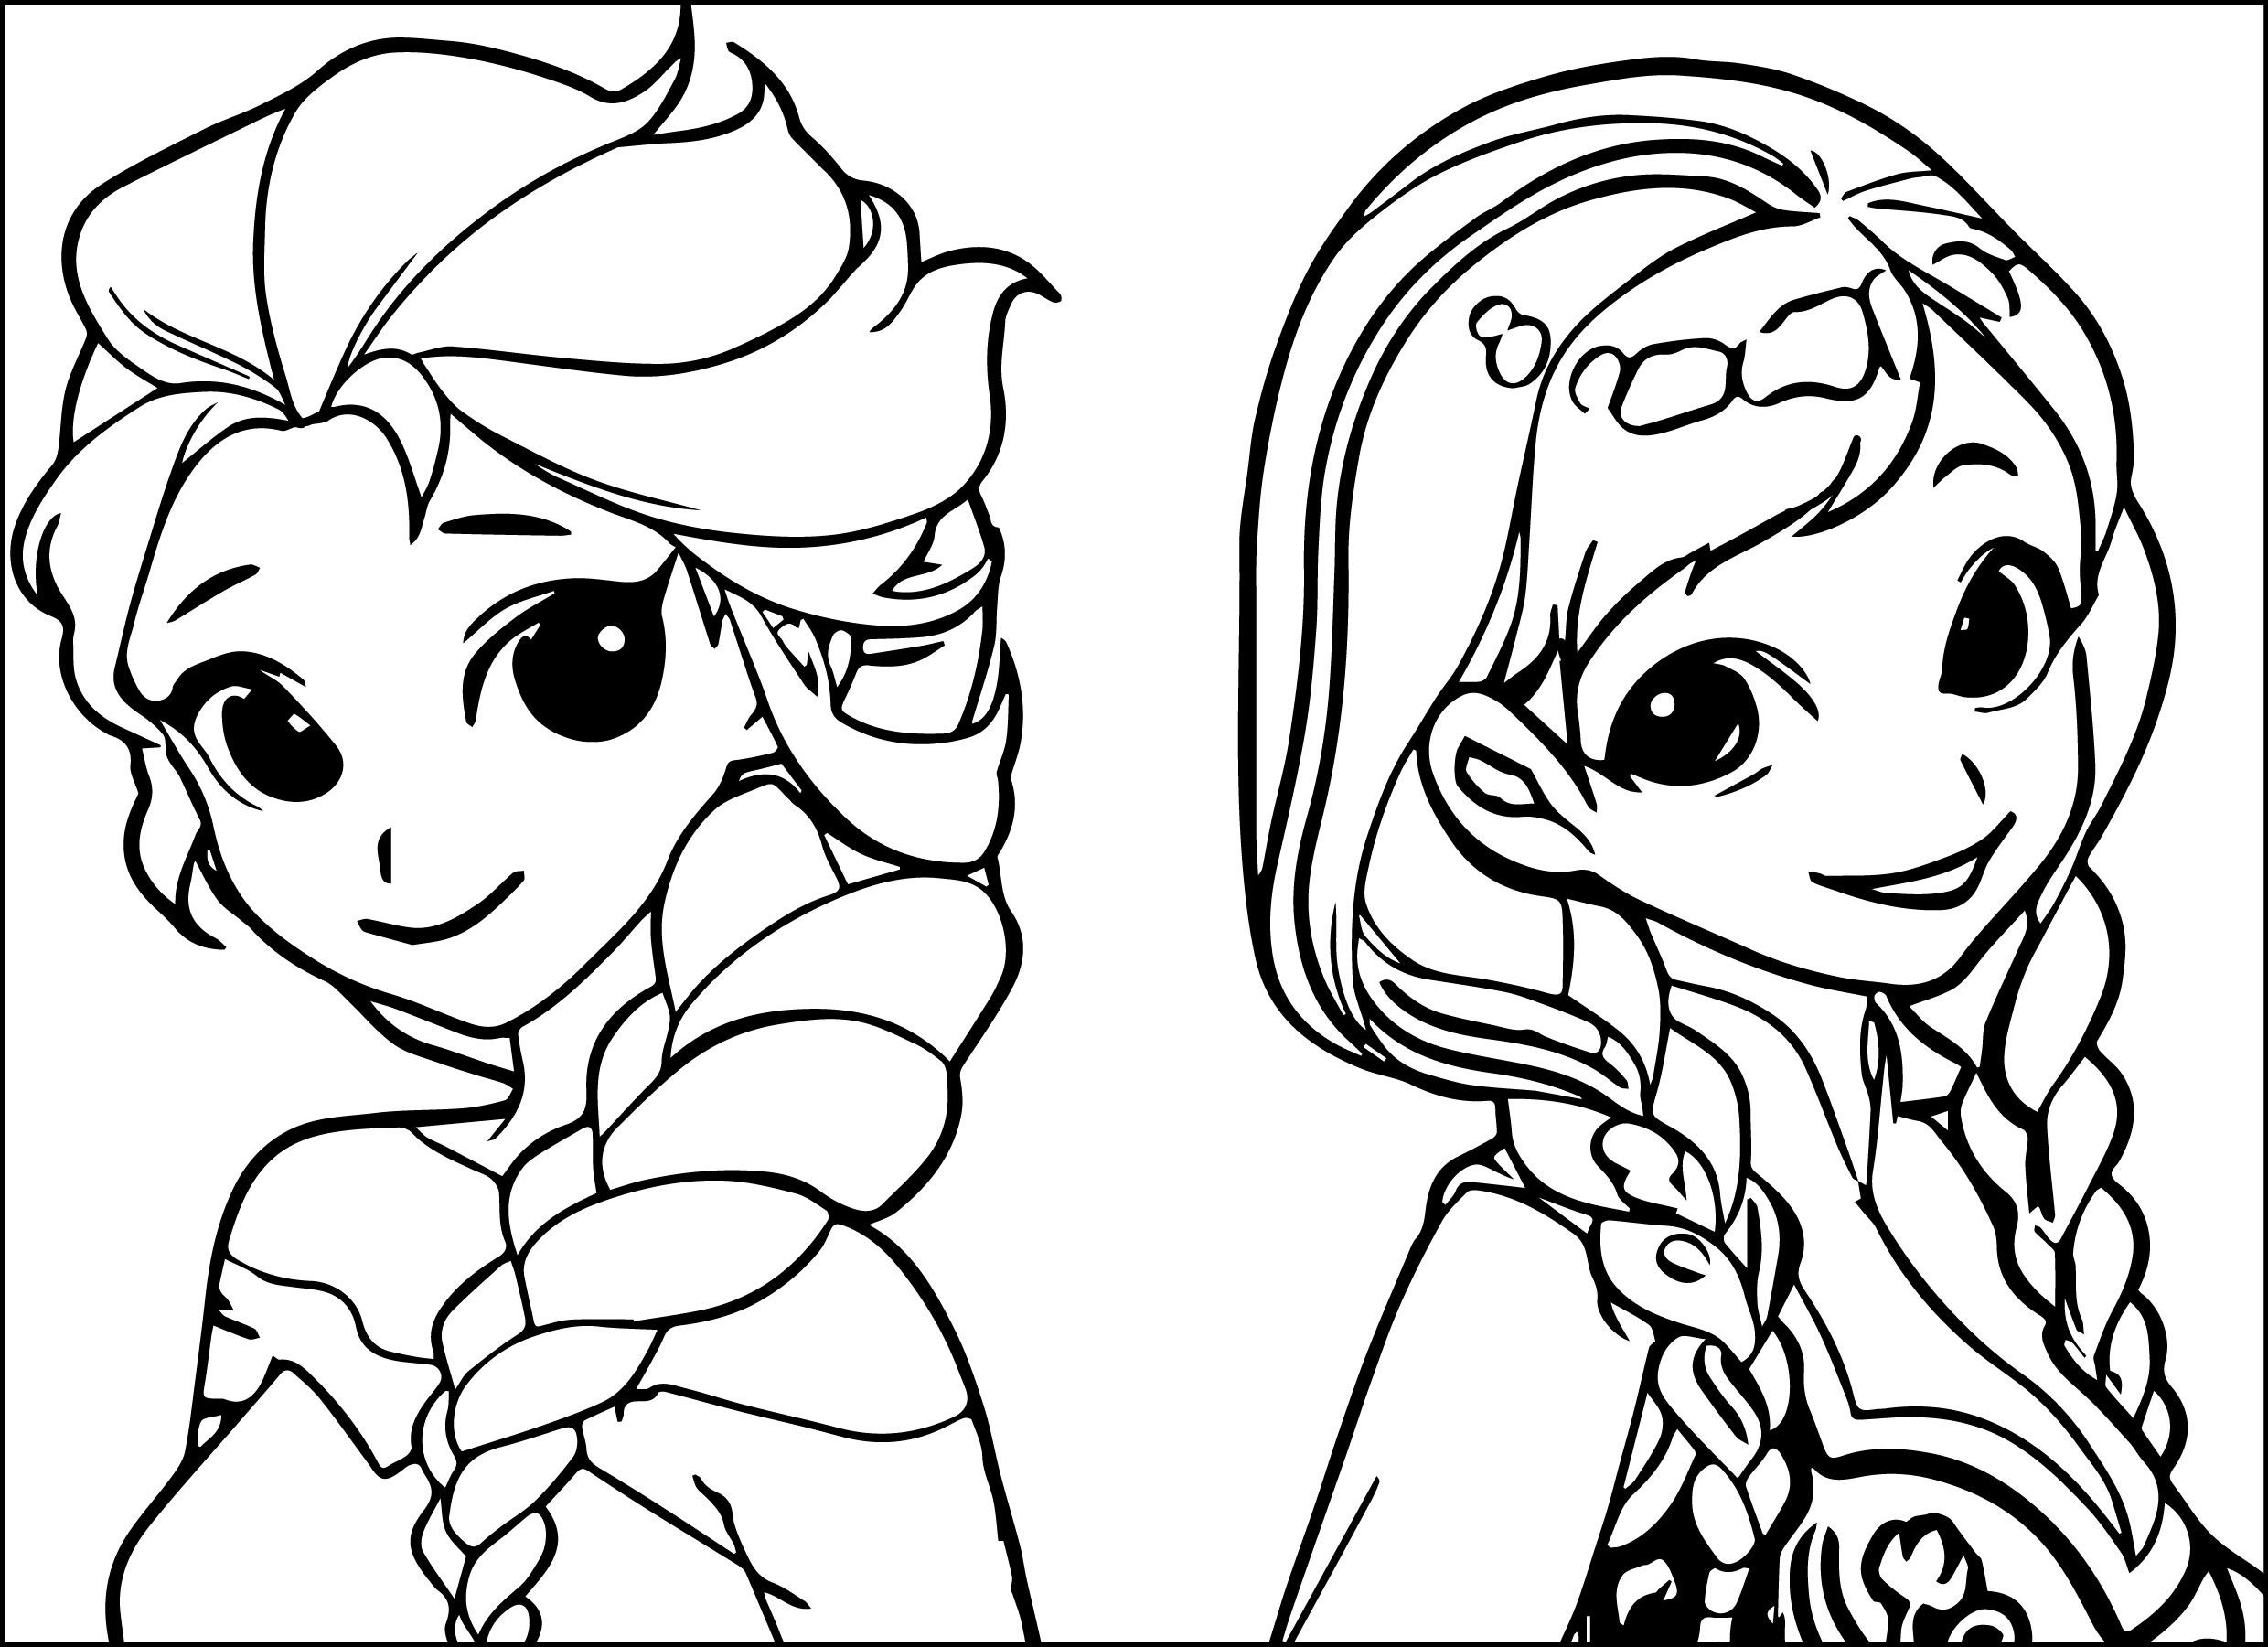 free coloring pages elsa and anna elsa anna coloring pages at getcoloringscom free elsa anna and pages coloring free